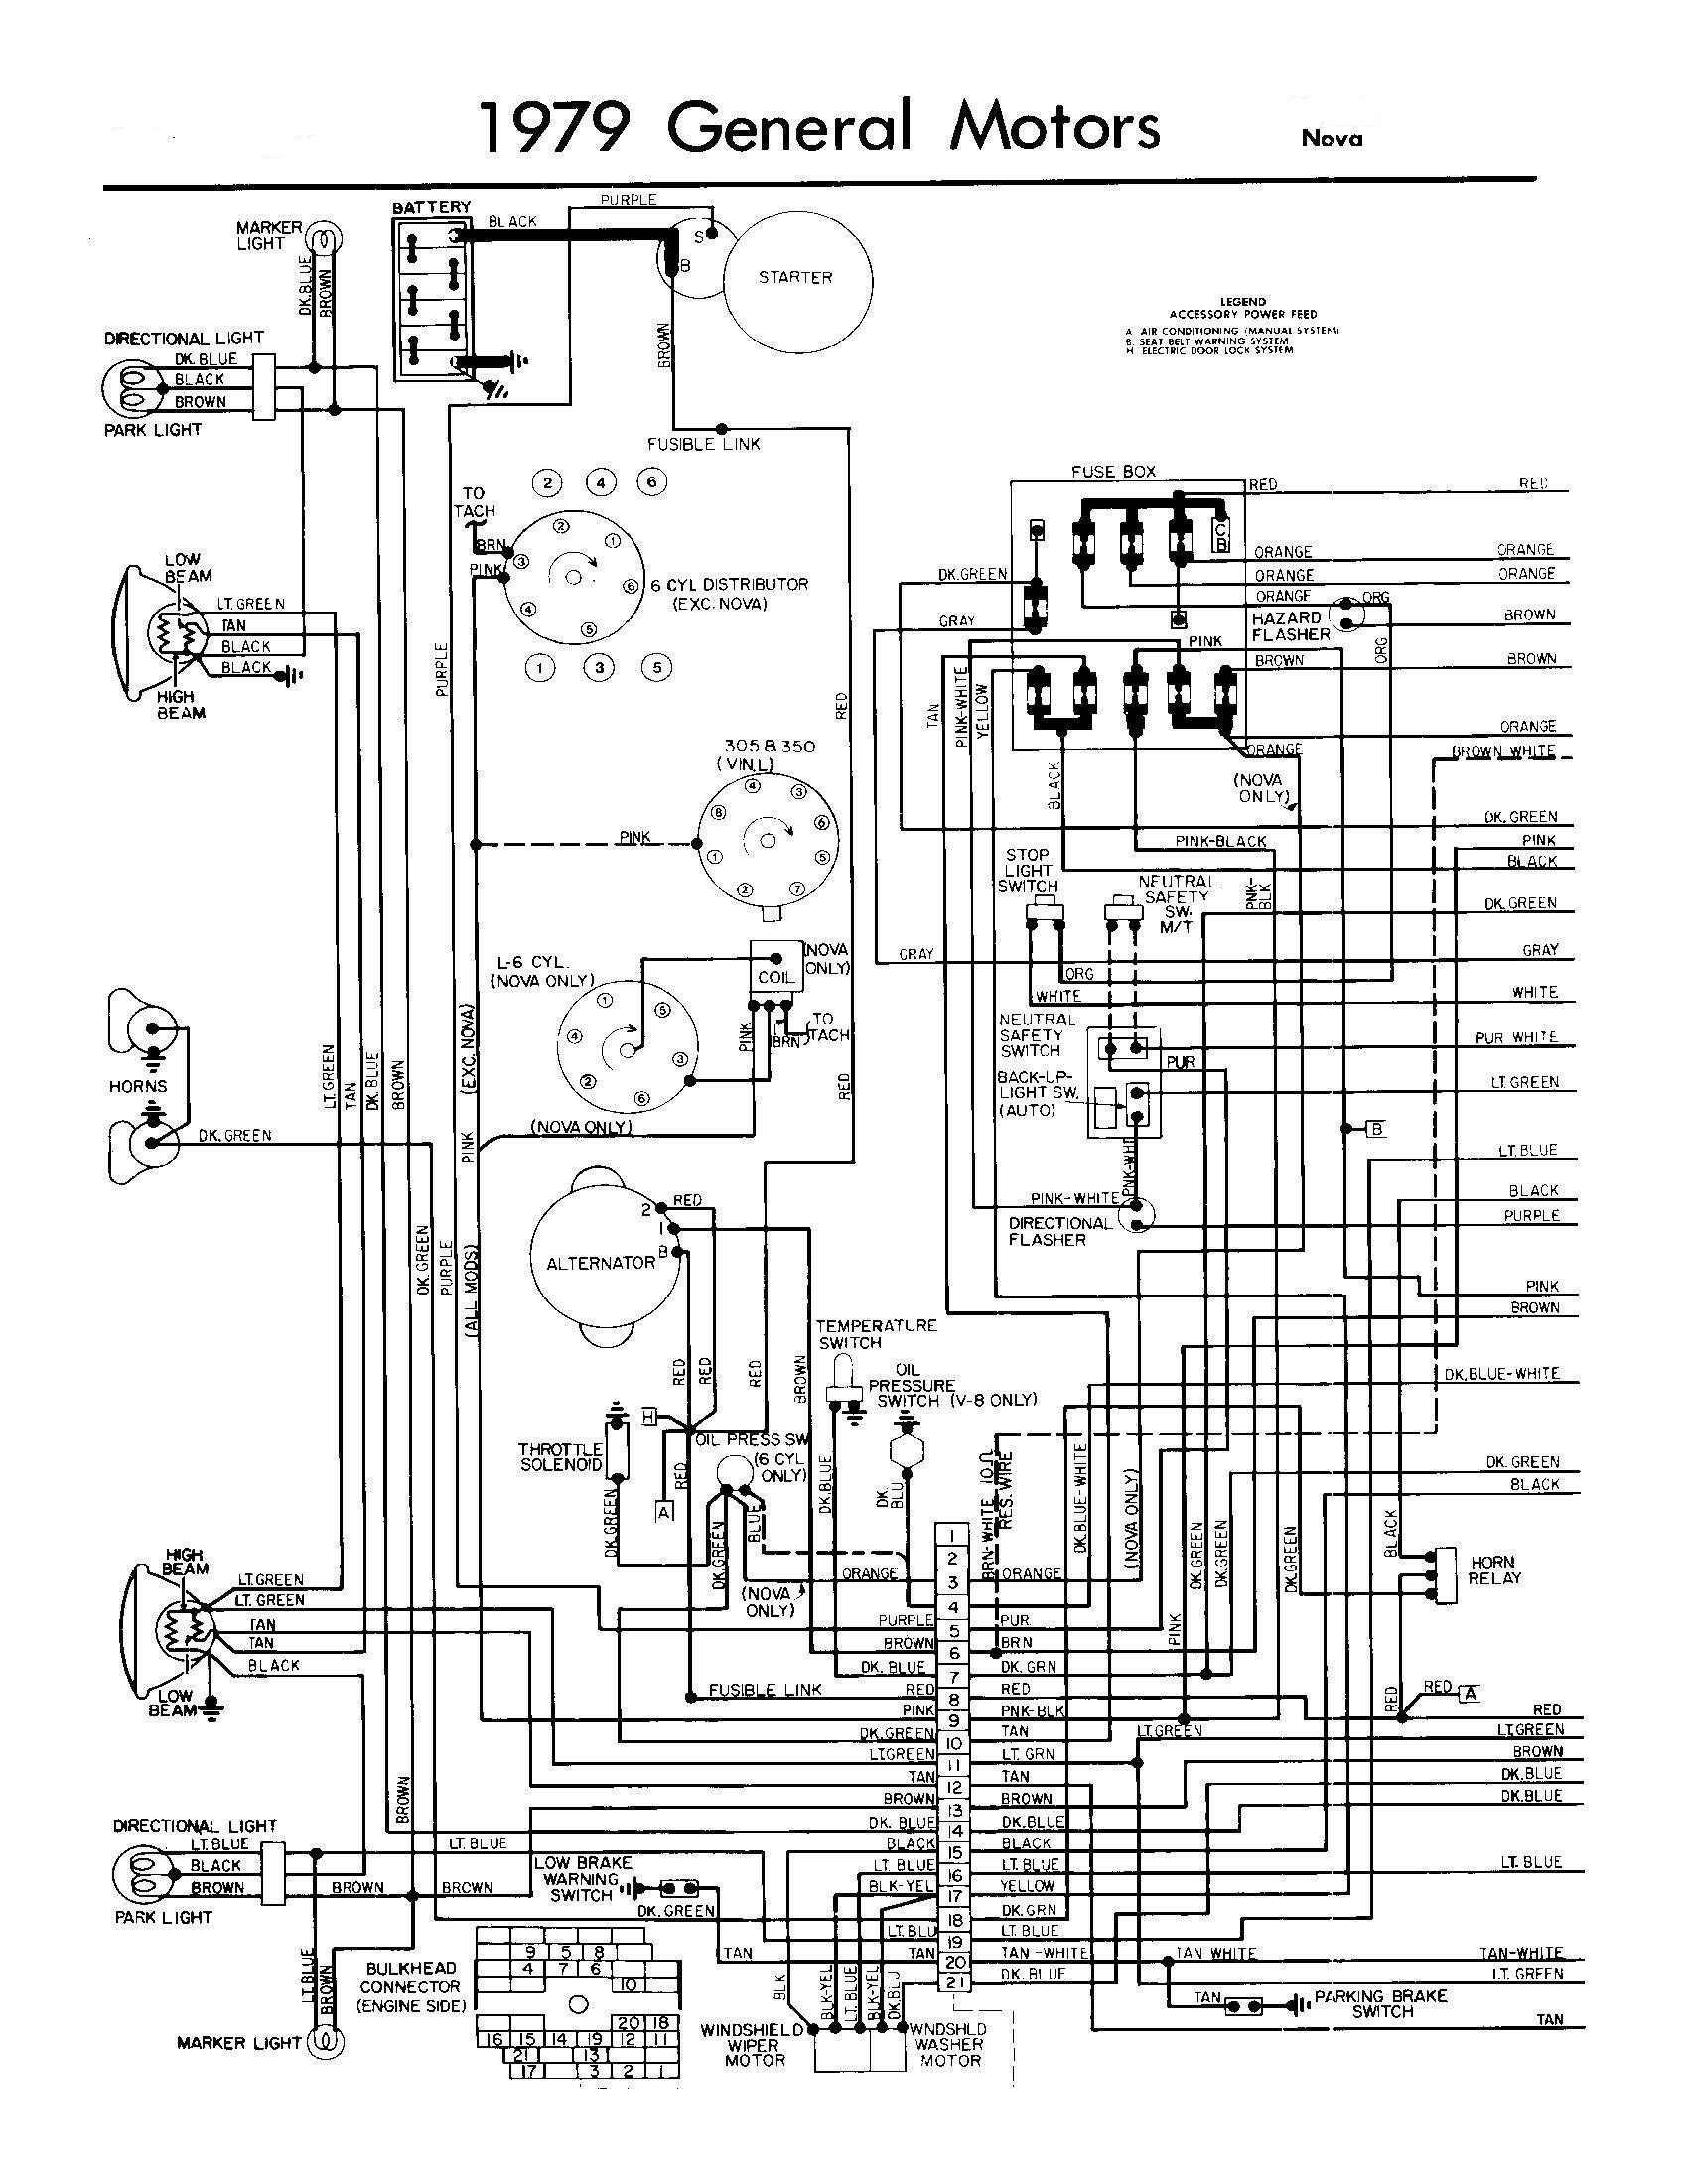 Vdo Oil Pressure Gauge Wiring Schematic Wiring Diagram Oil Pressure 1992 Lumina Of Vdo Oil Pressure Gauge Wiring Schematic